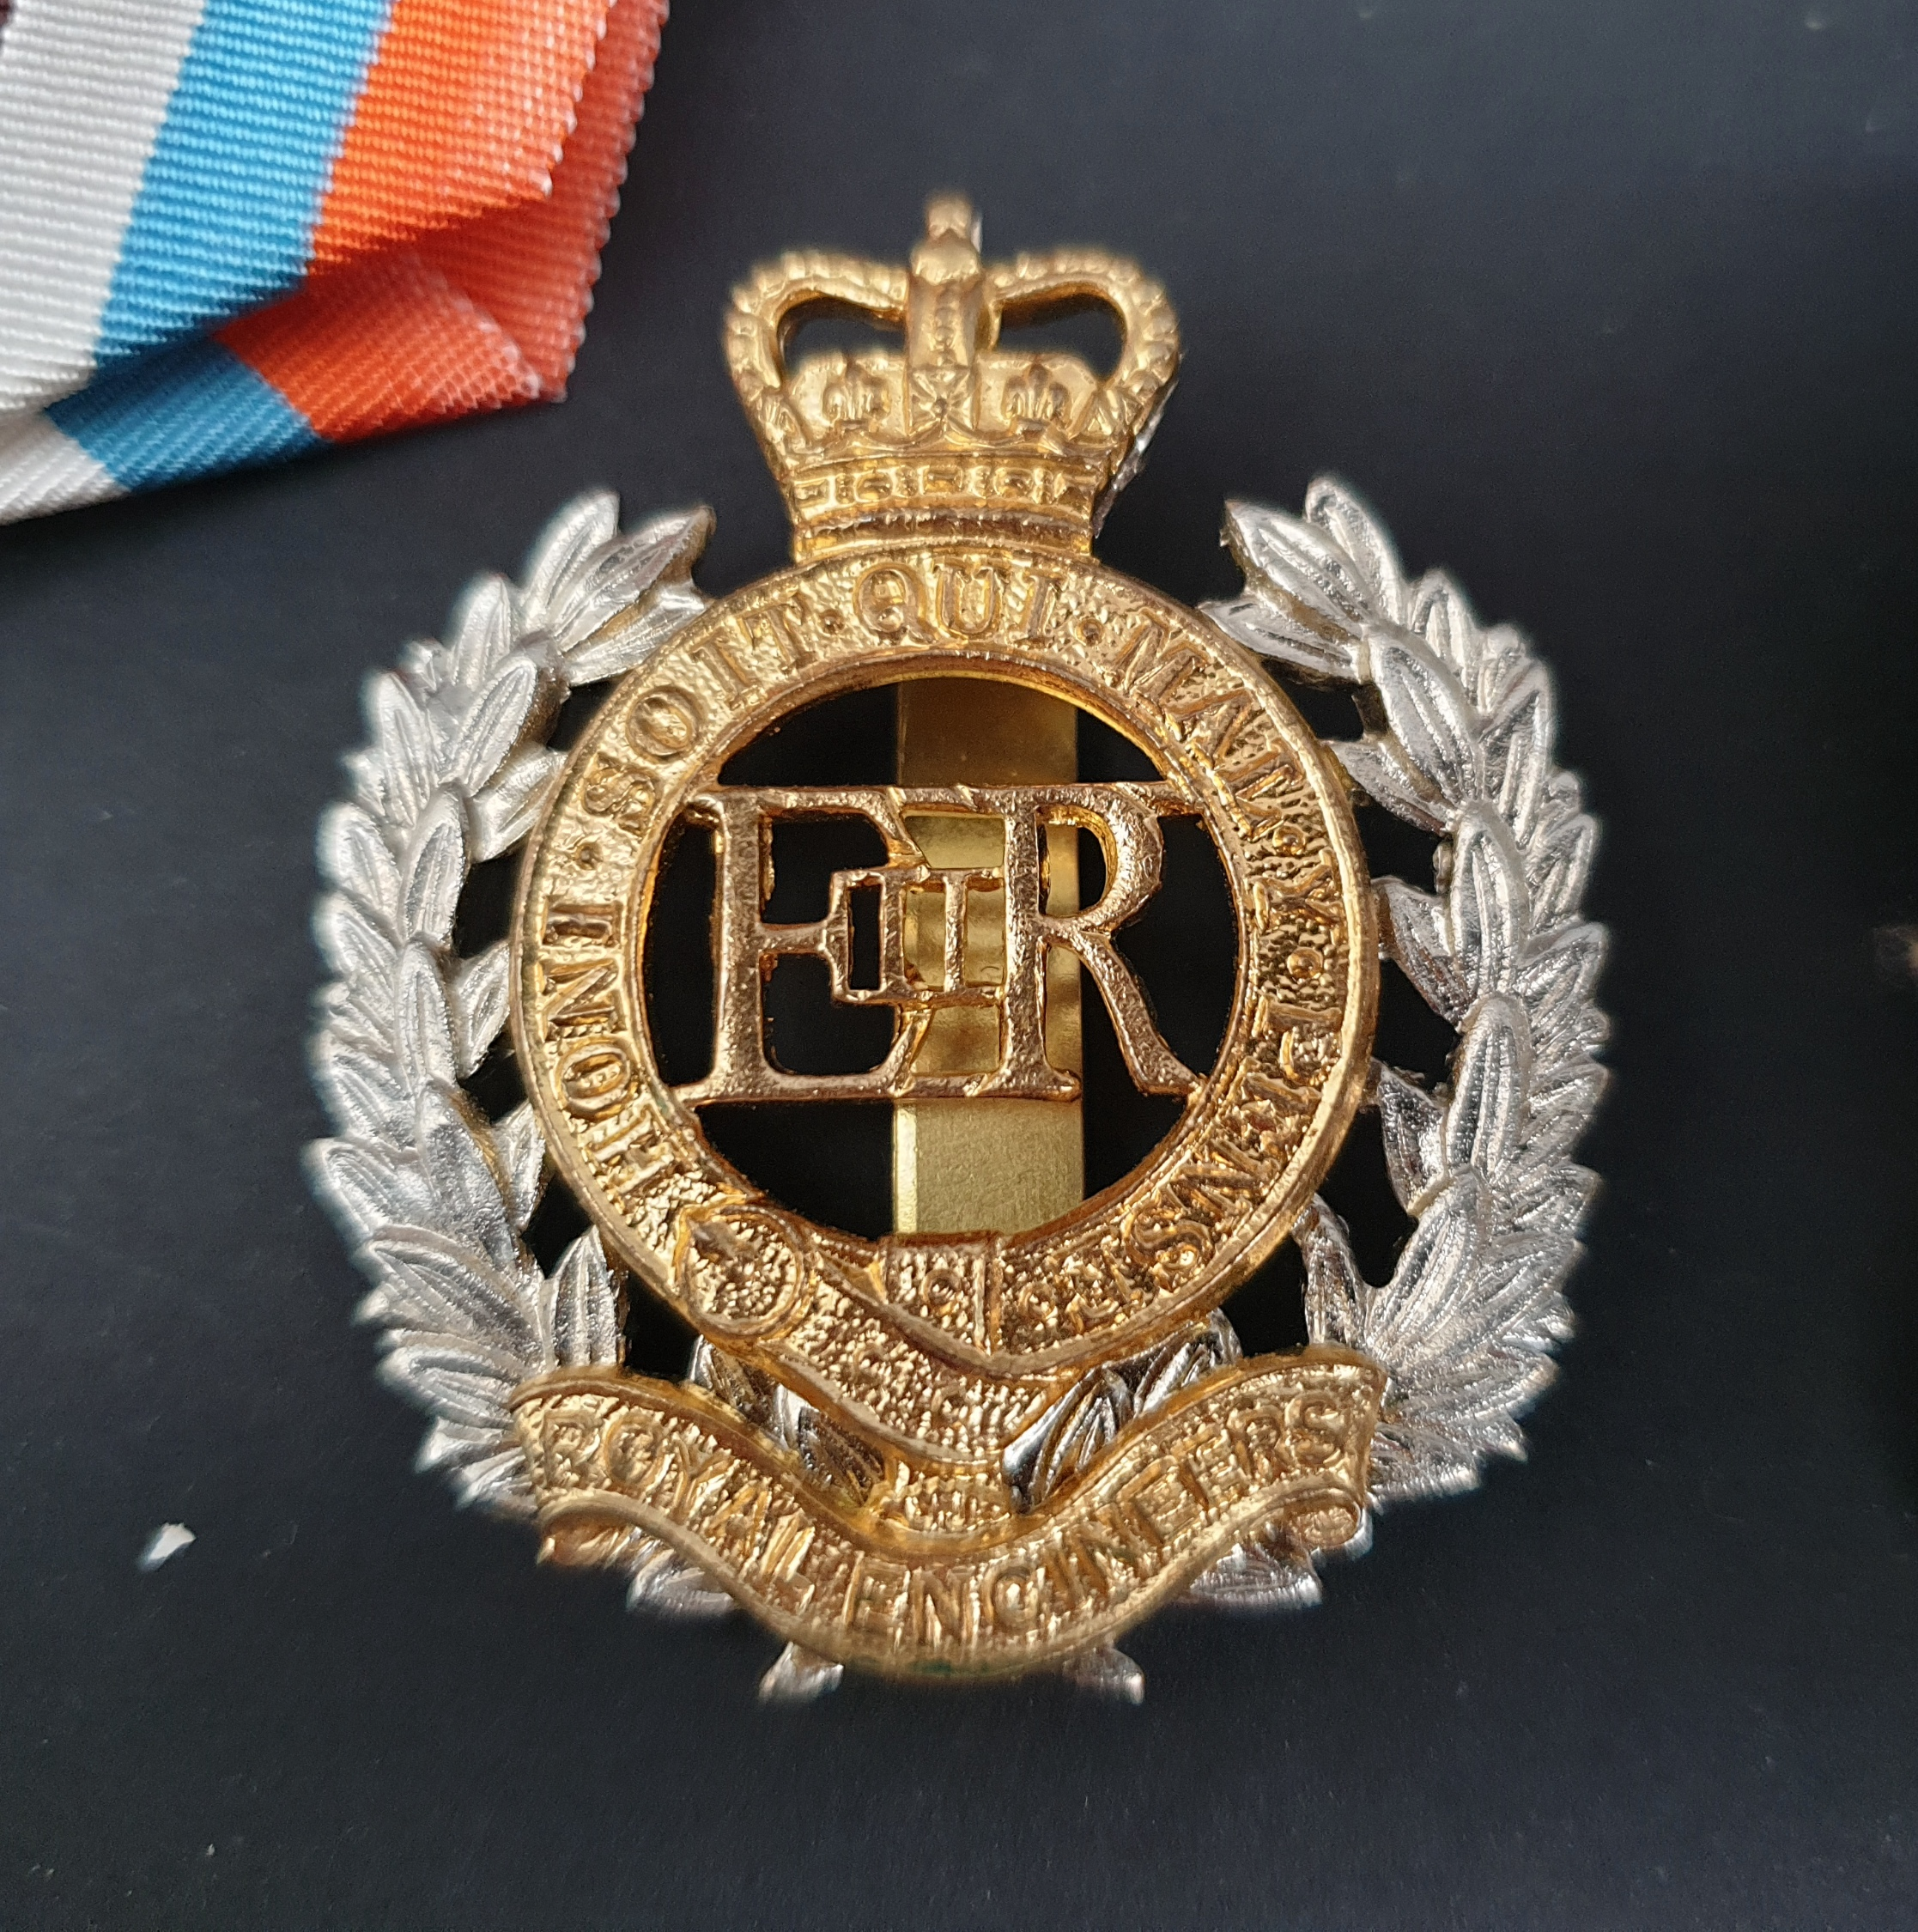 Parcel of Military Badges Medal Ribbons & Lapel Badges - Image 3 of 4